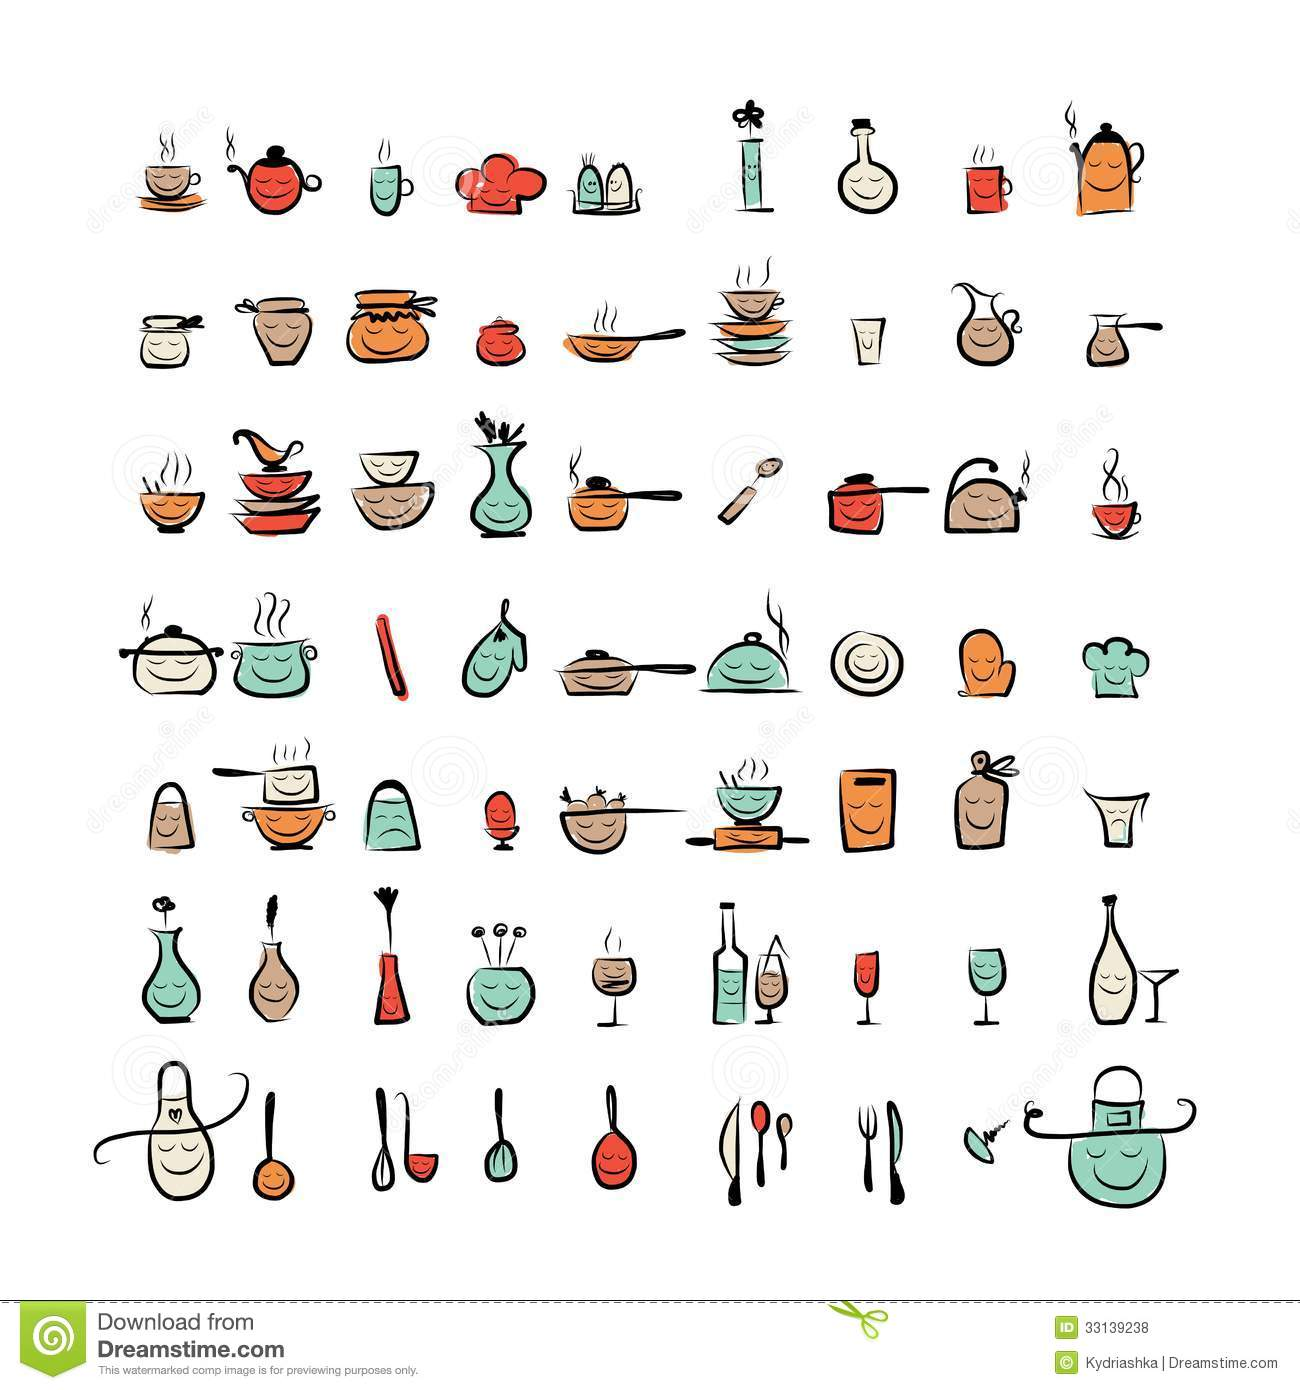 Kitchen utensils characters sketch drawing icons royalty - Liste des ustensiles de cuisine ...